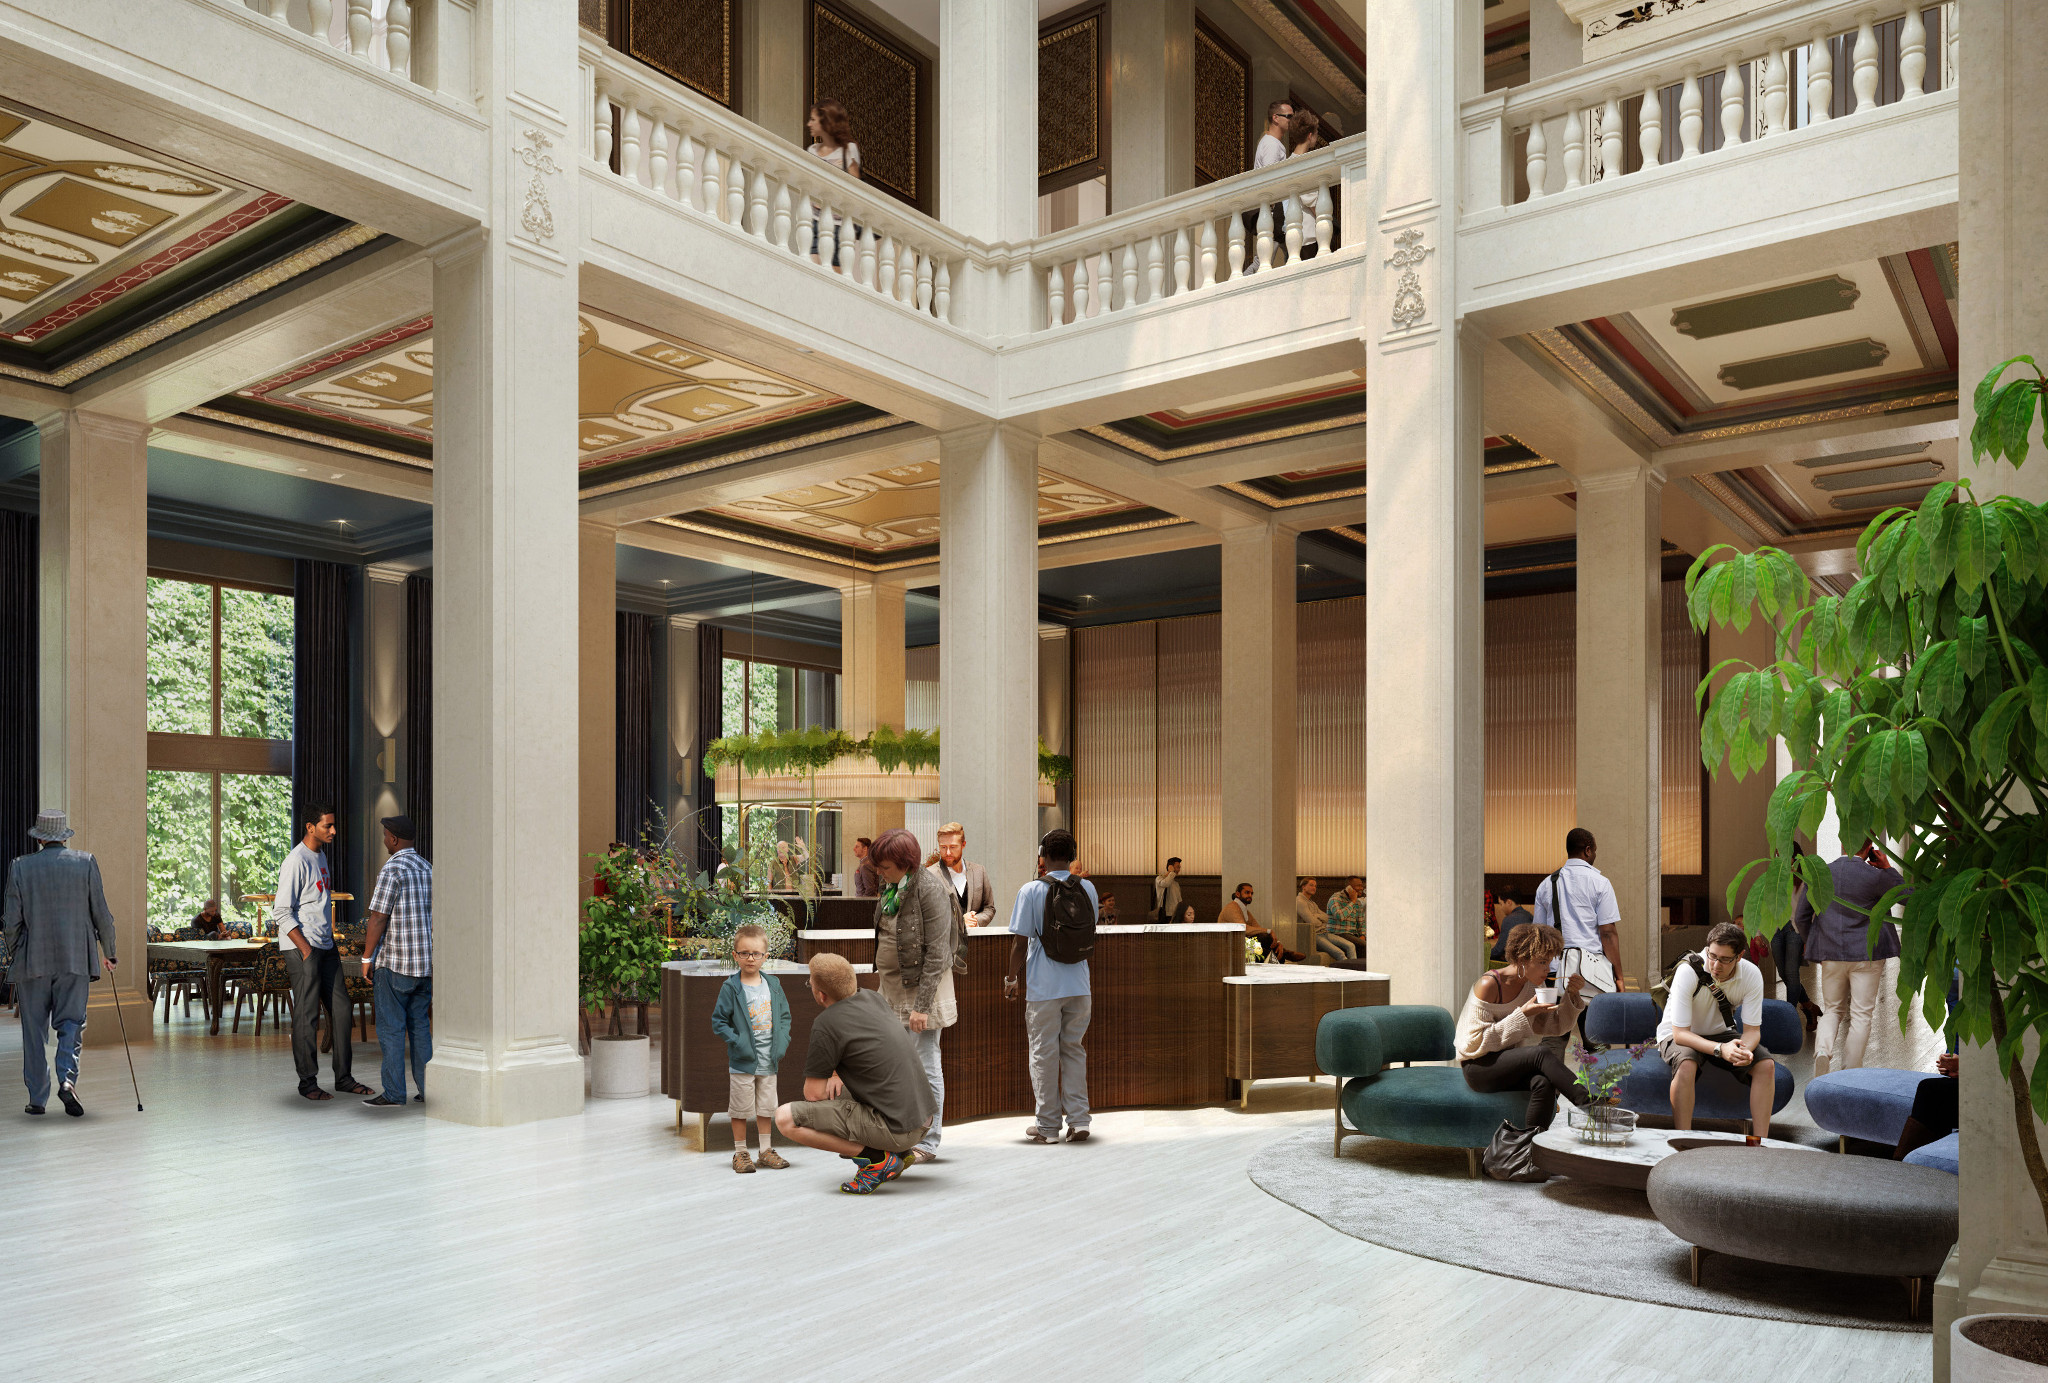 People sit on low couches near planters and wait at a desk area in the lobby. There's tall columns that connect to the second floor.